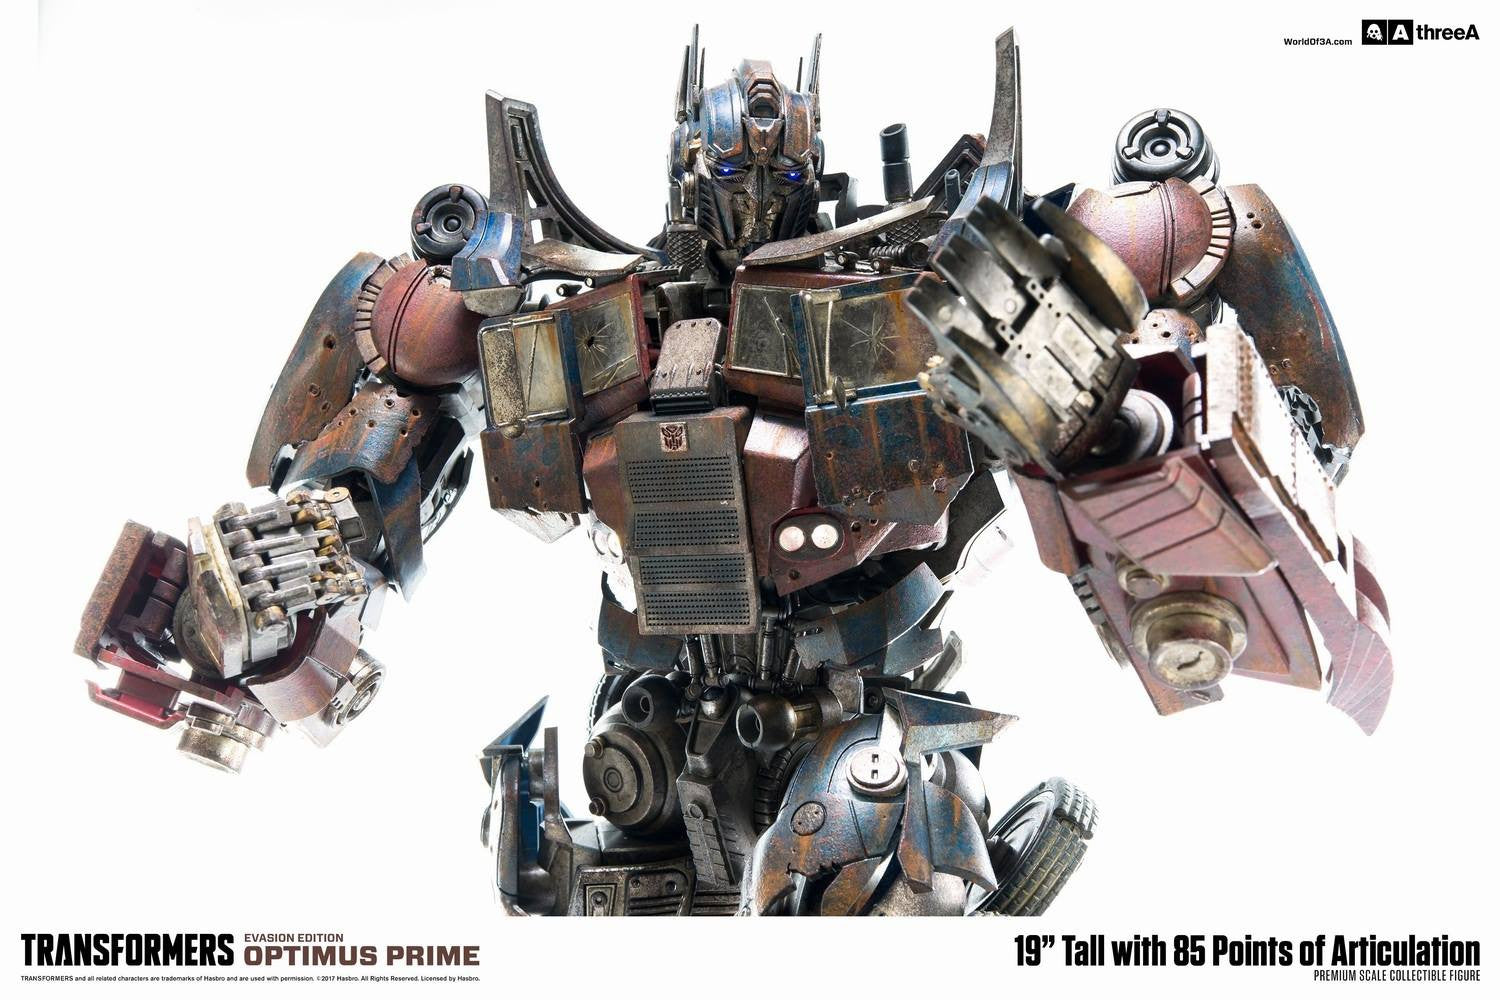 ThreeA - Transformers: Age of Extinction - Optimus Prime Evasion Edition Premium Scale